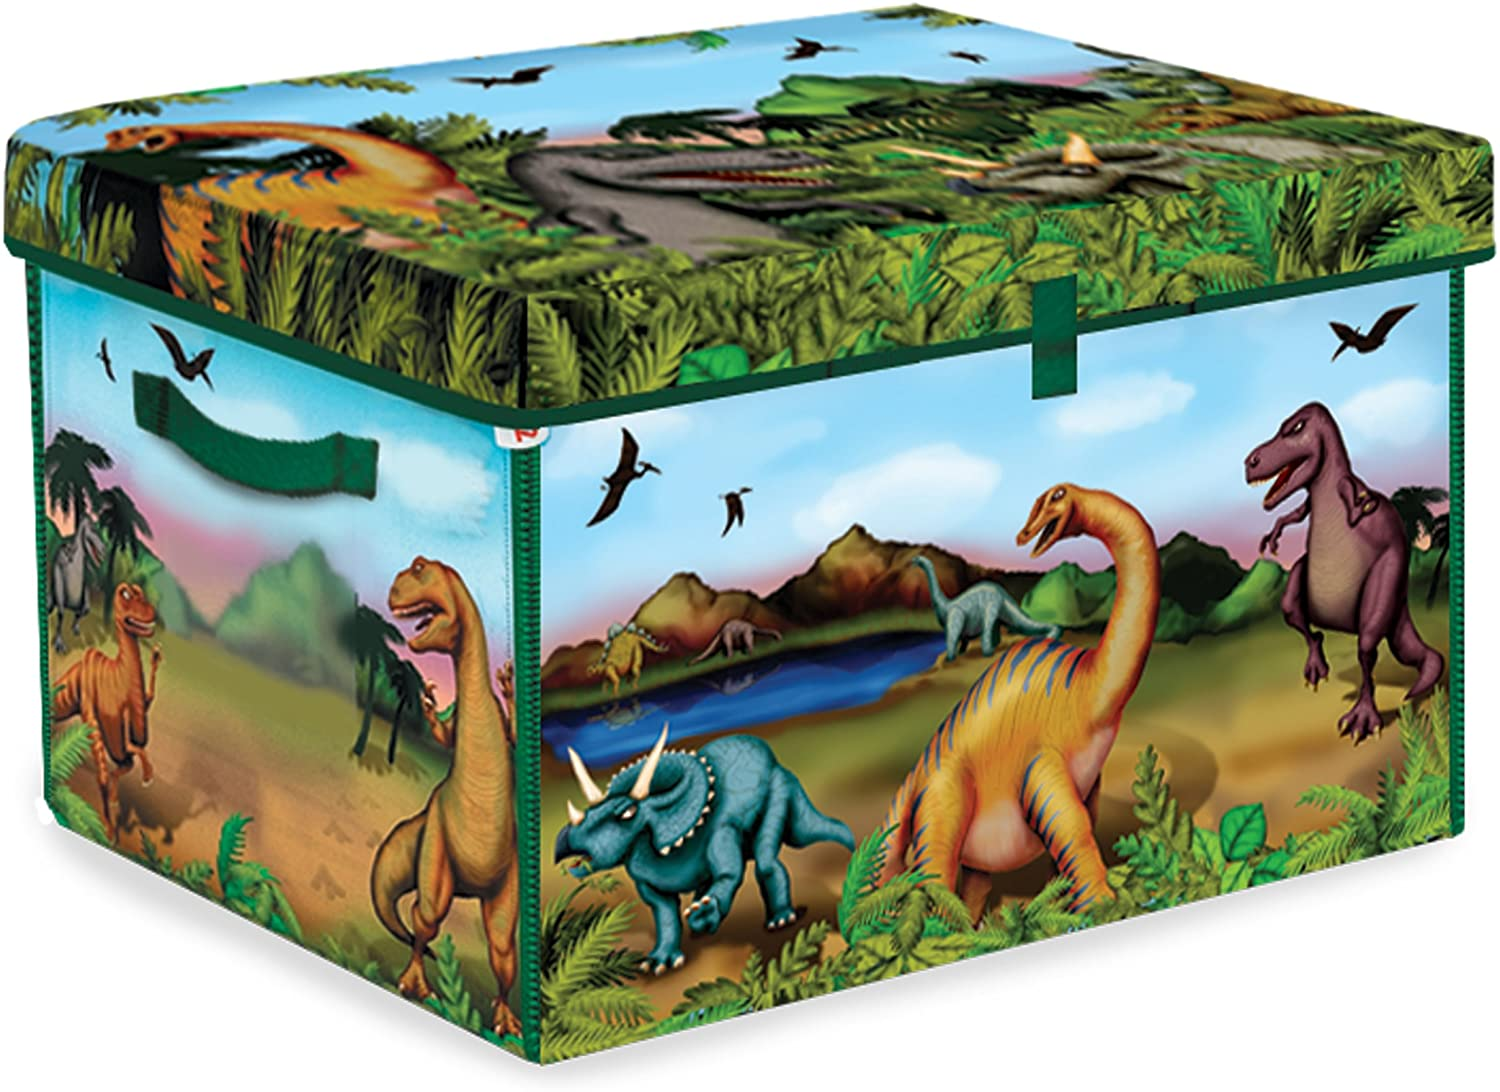 ZipBin 160 Dinosaur Collector Toy Box Dinosaurs w set 2 Play Super Special SALE Bombing free shipping held